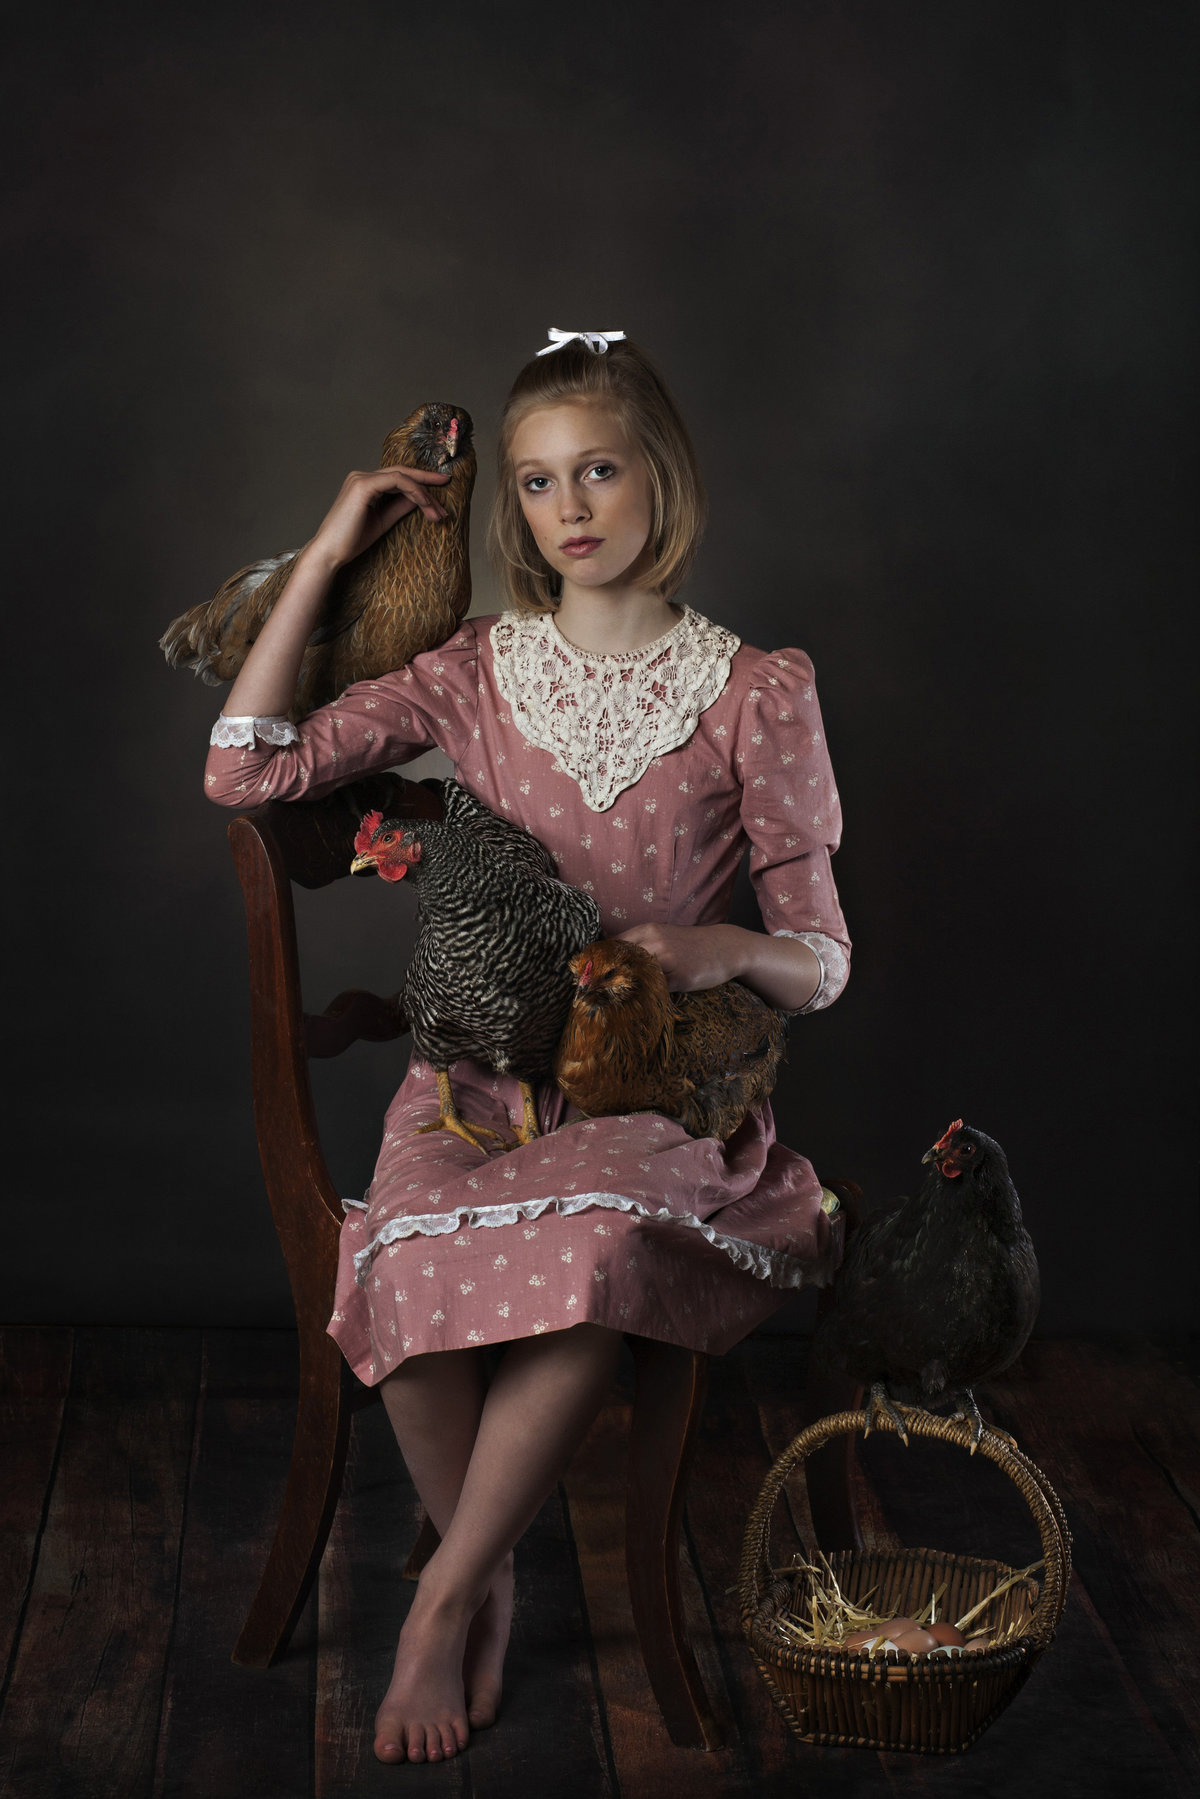 Chicken Whisperer, Girl with pet chickens